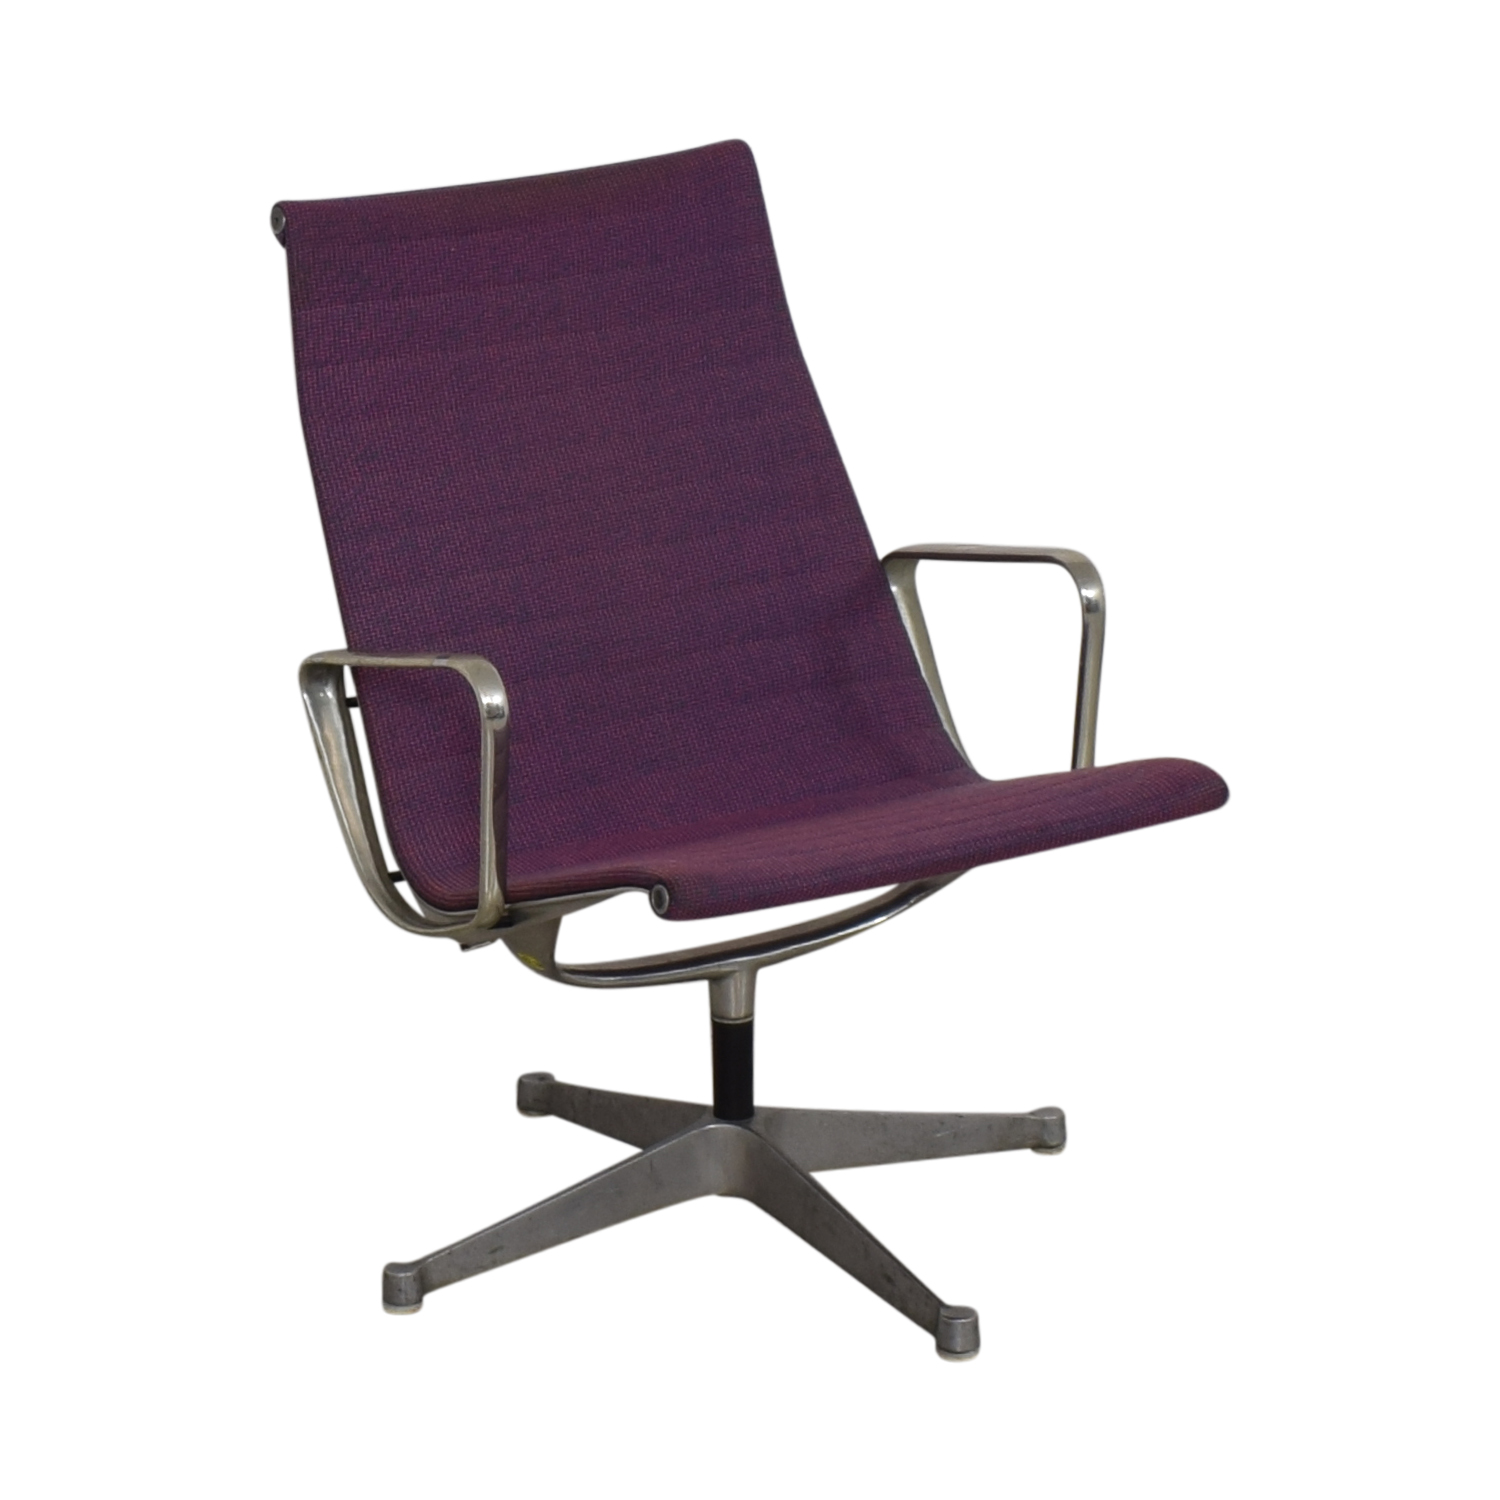 Herman Miller Herman Miller Eames Office Chair on sale